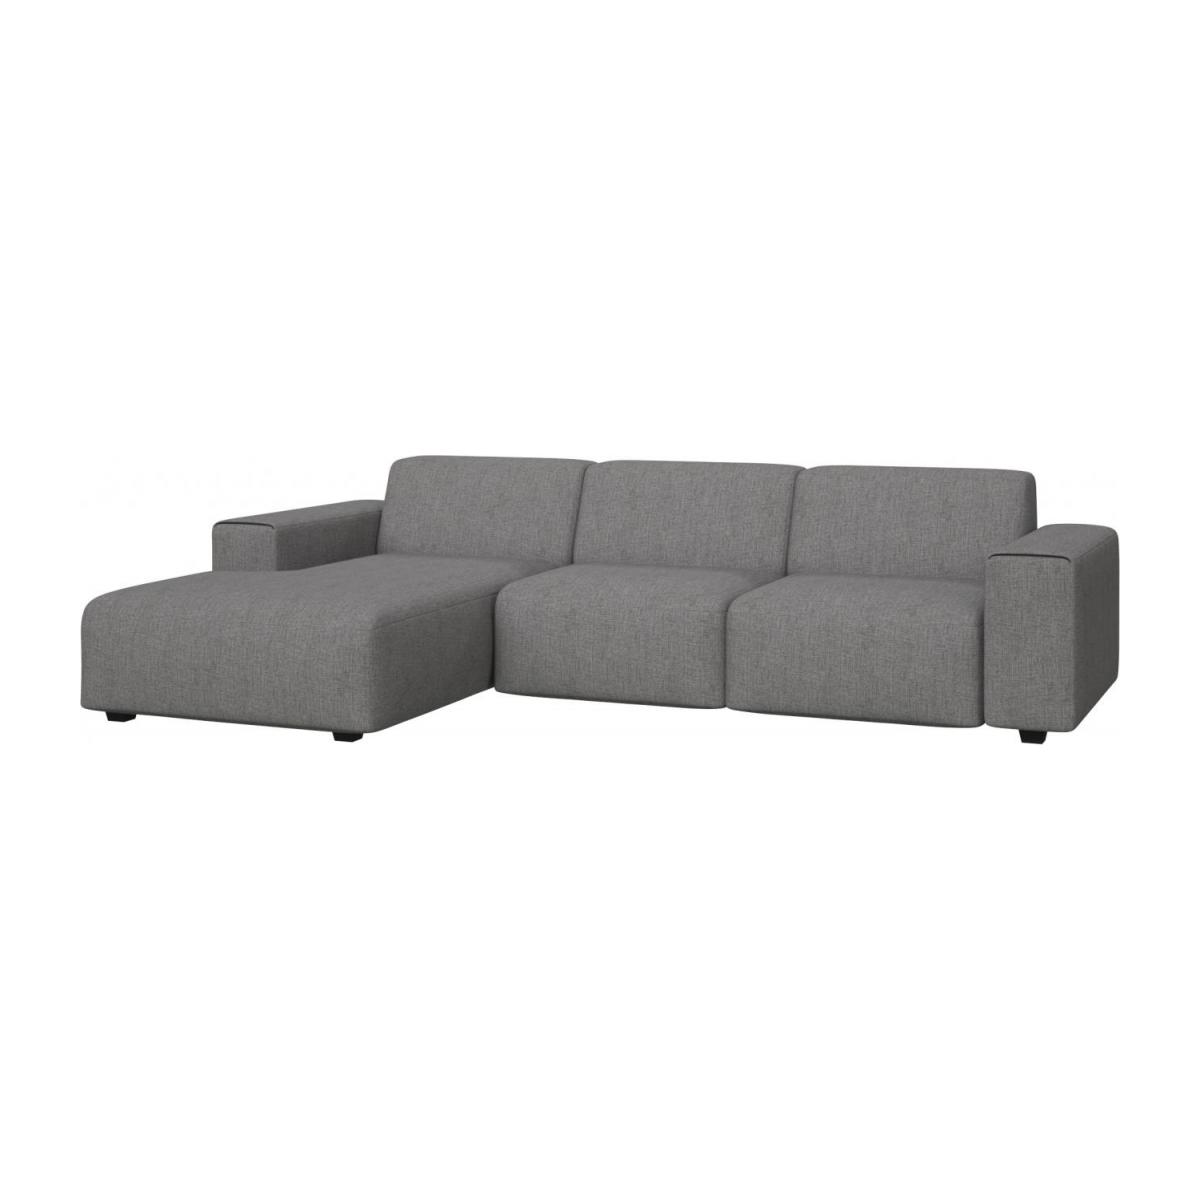 3 seater sofa with chaise longue on the left in Ancio fabric, river rock n°1